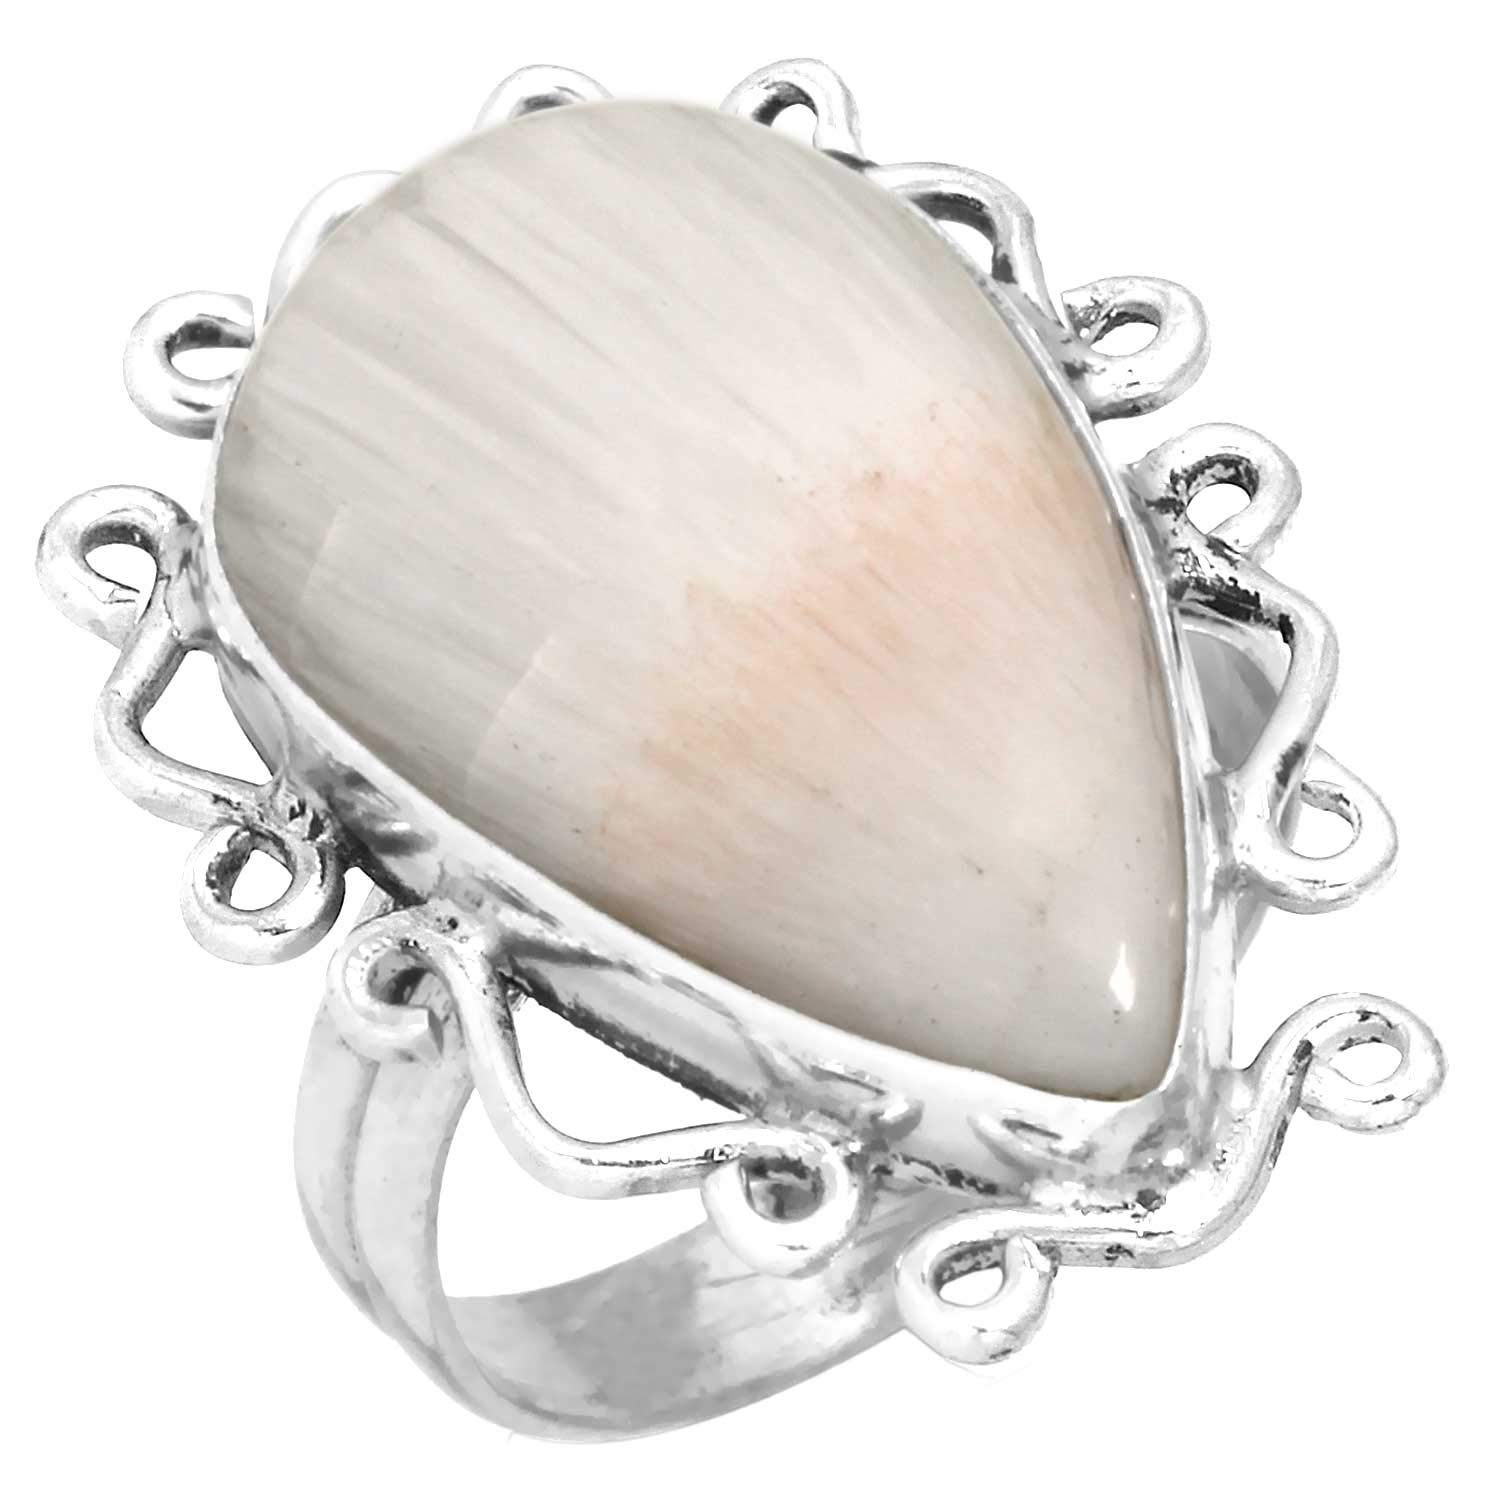 Solid 925 Sterling Silver Unique Jewelry Natural Scolecite Ring Size 5.5